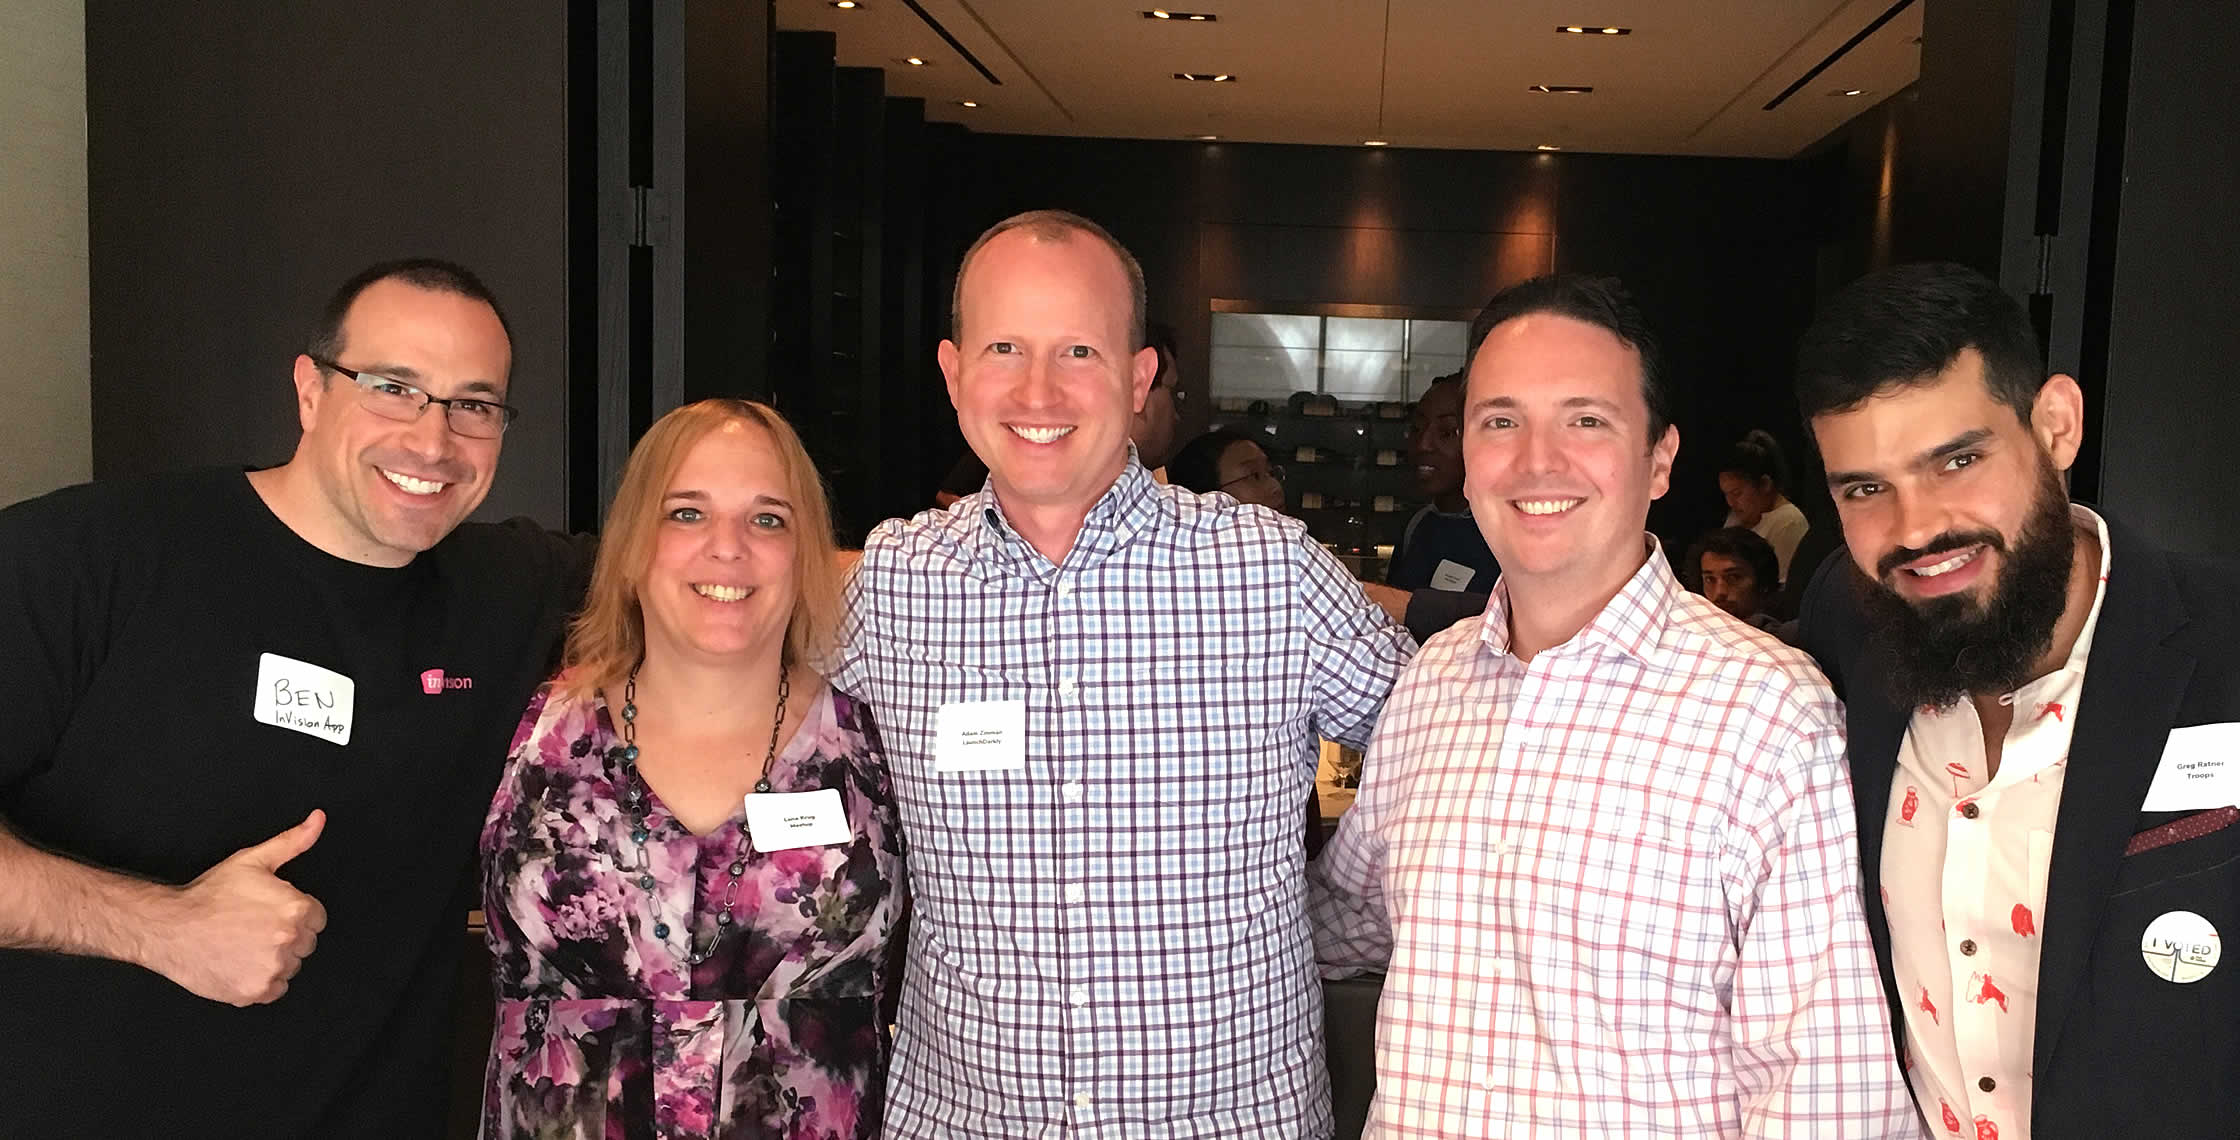 Ben Nadel at LaunchDarkly Lunch & Learn 2018 (New York, NY) with: Lena Krug, Adam Zimman, Christopher Cosentino, and Greg Ratner